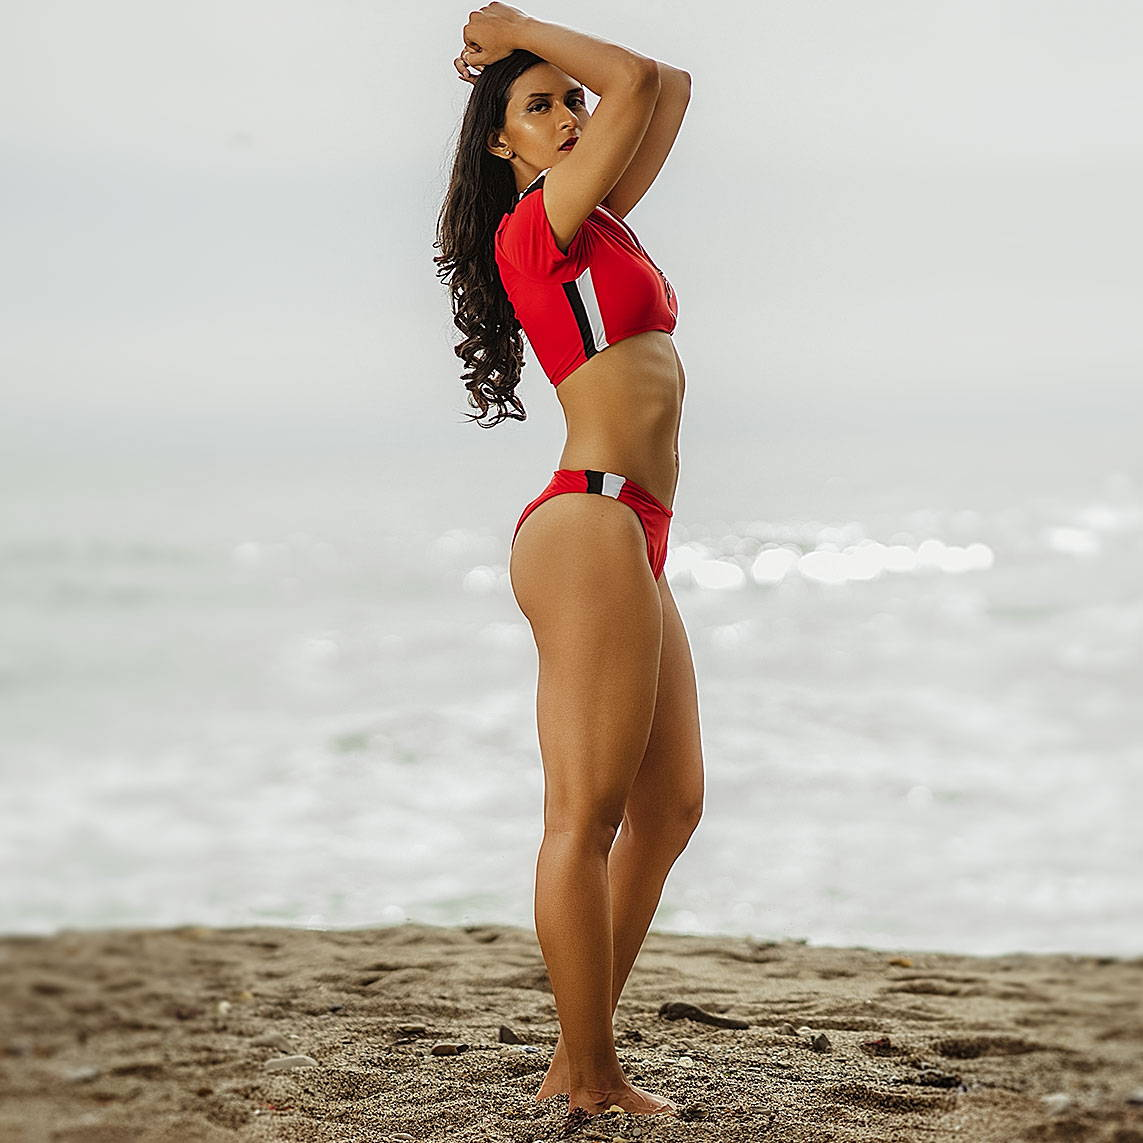 Desi girl in a red sporty 2 piece bikini on the beach